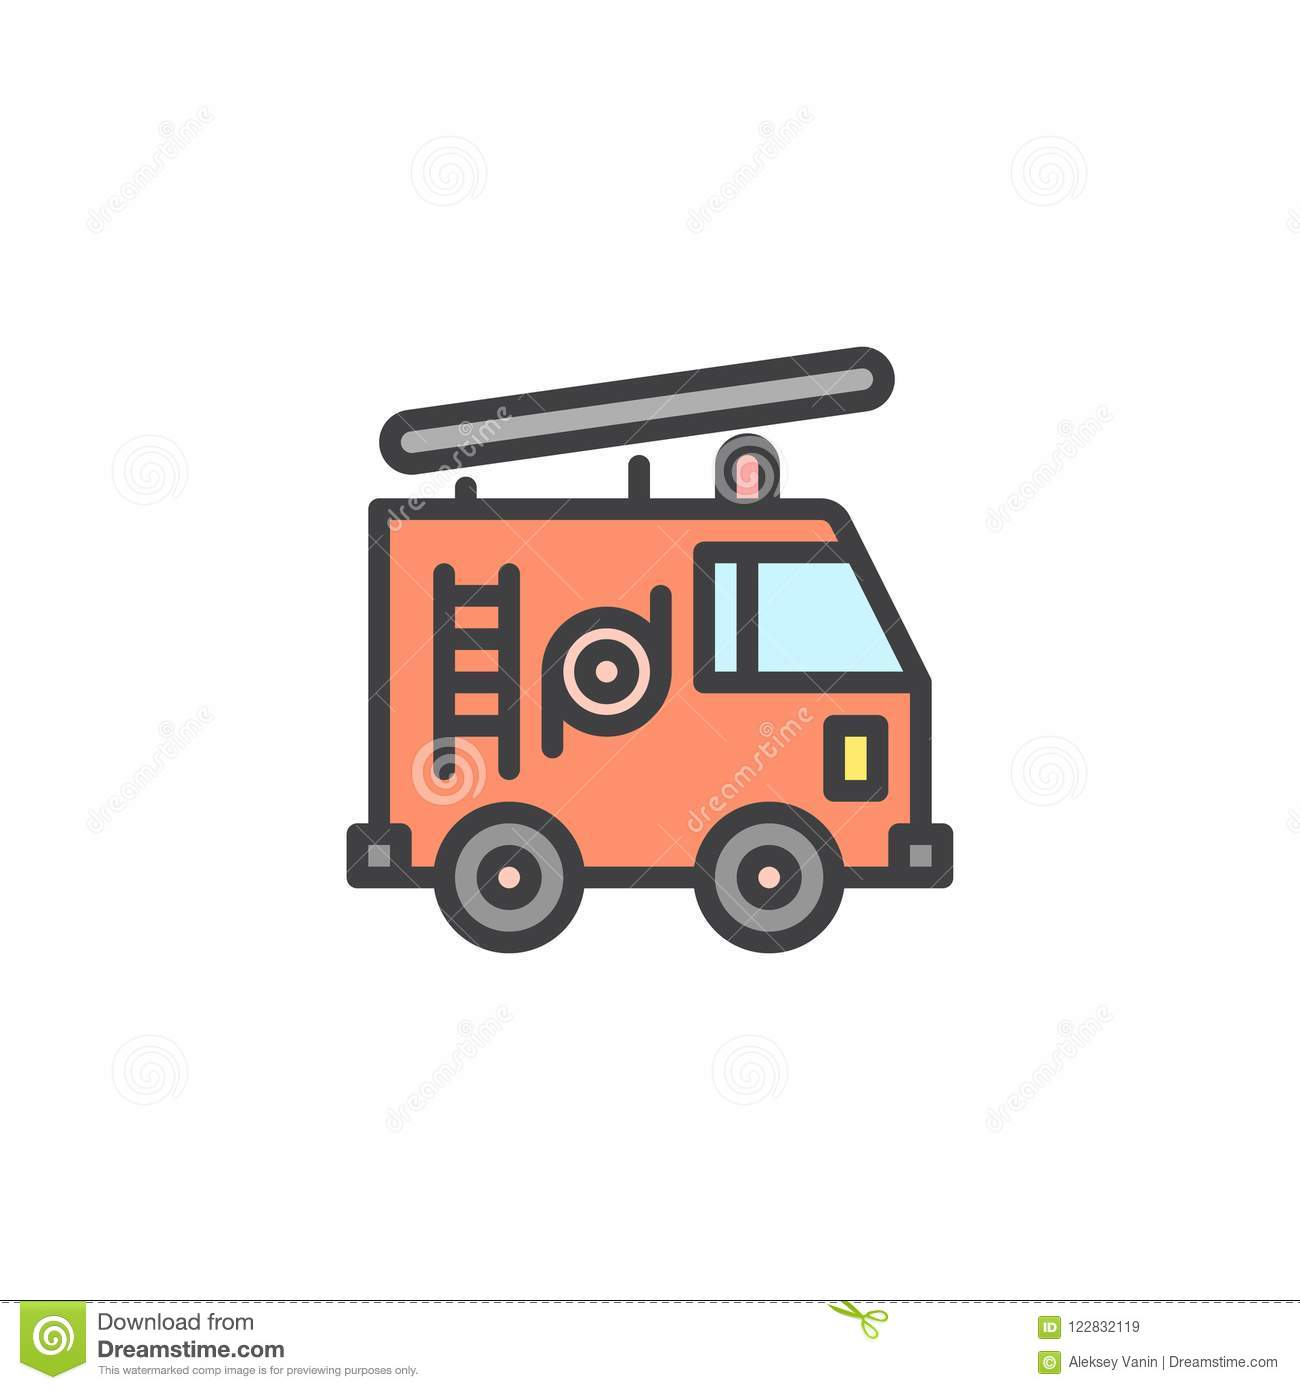 Fire Truck Filled Outline Icon Line Vector Sign Linear Colorful Pictogram Isolated On White Firefighter Symbol Logo Illustration